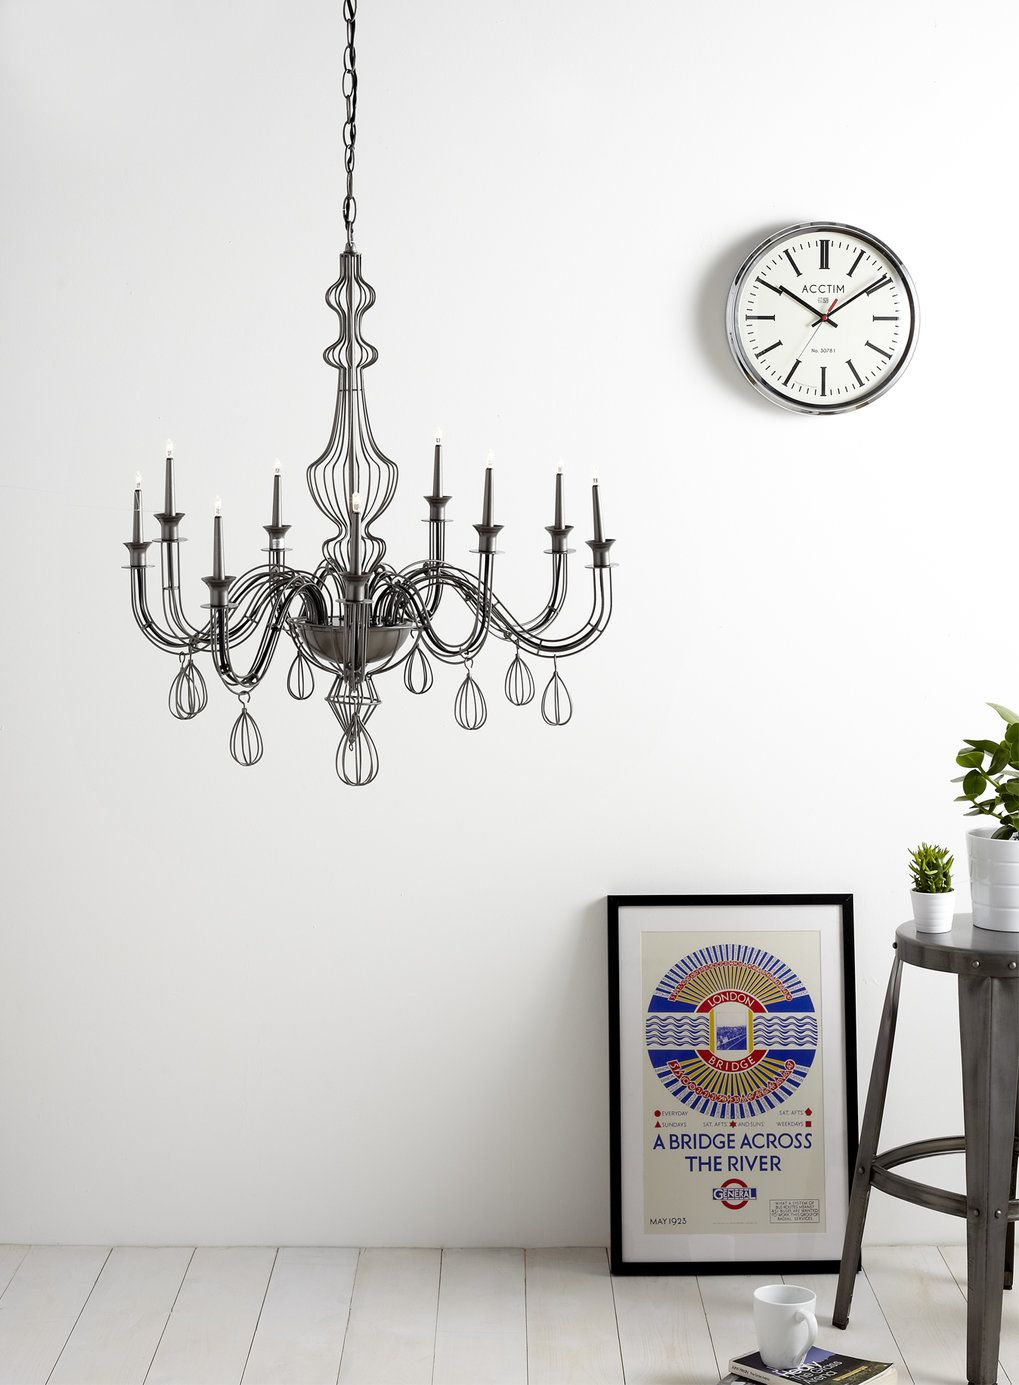 Etra chandelier gothic wire chandelier bhs for the home etra chandelier gothic wire chandelier bhs arubaitofo Image collections